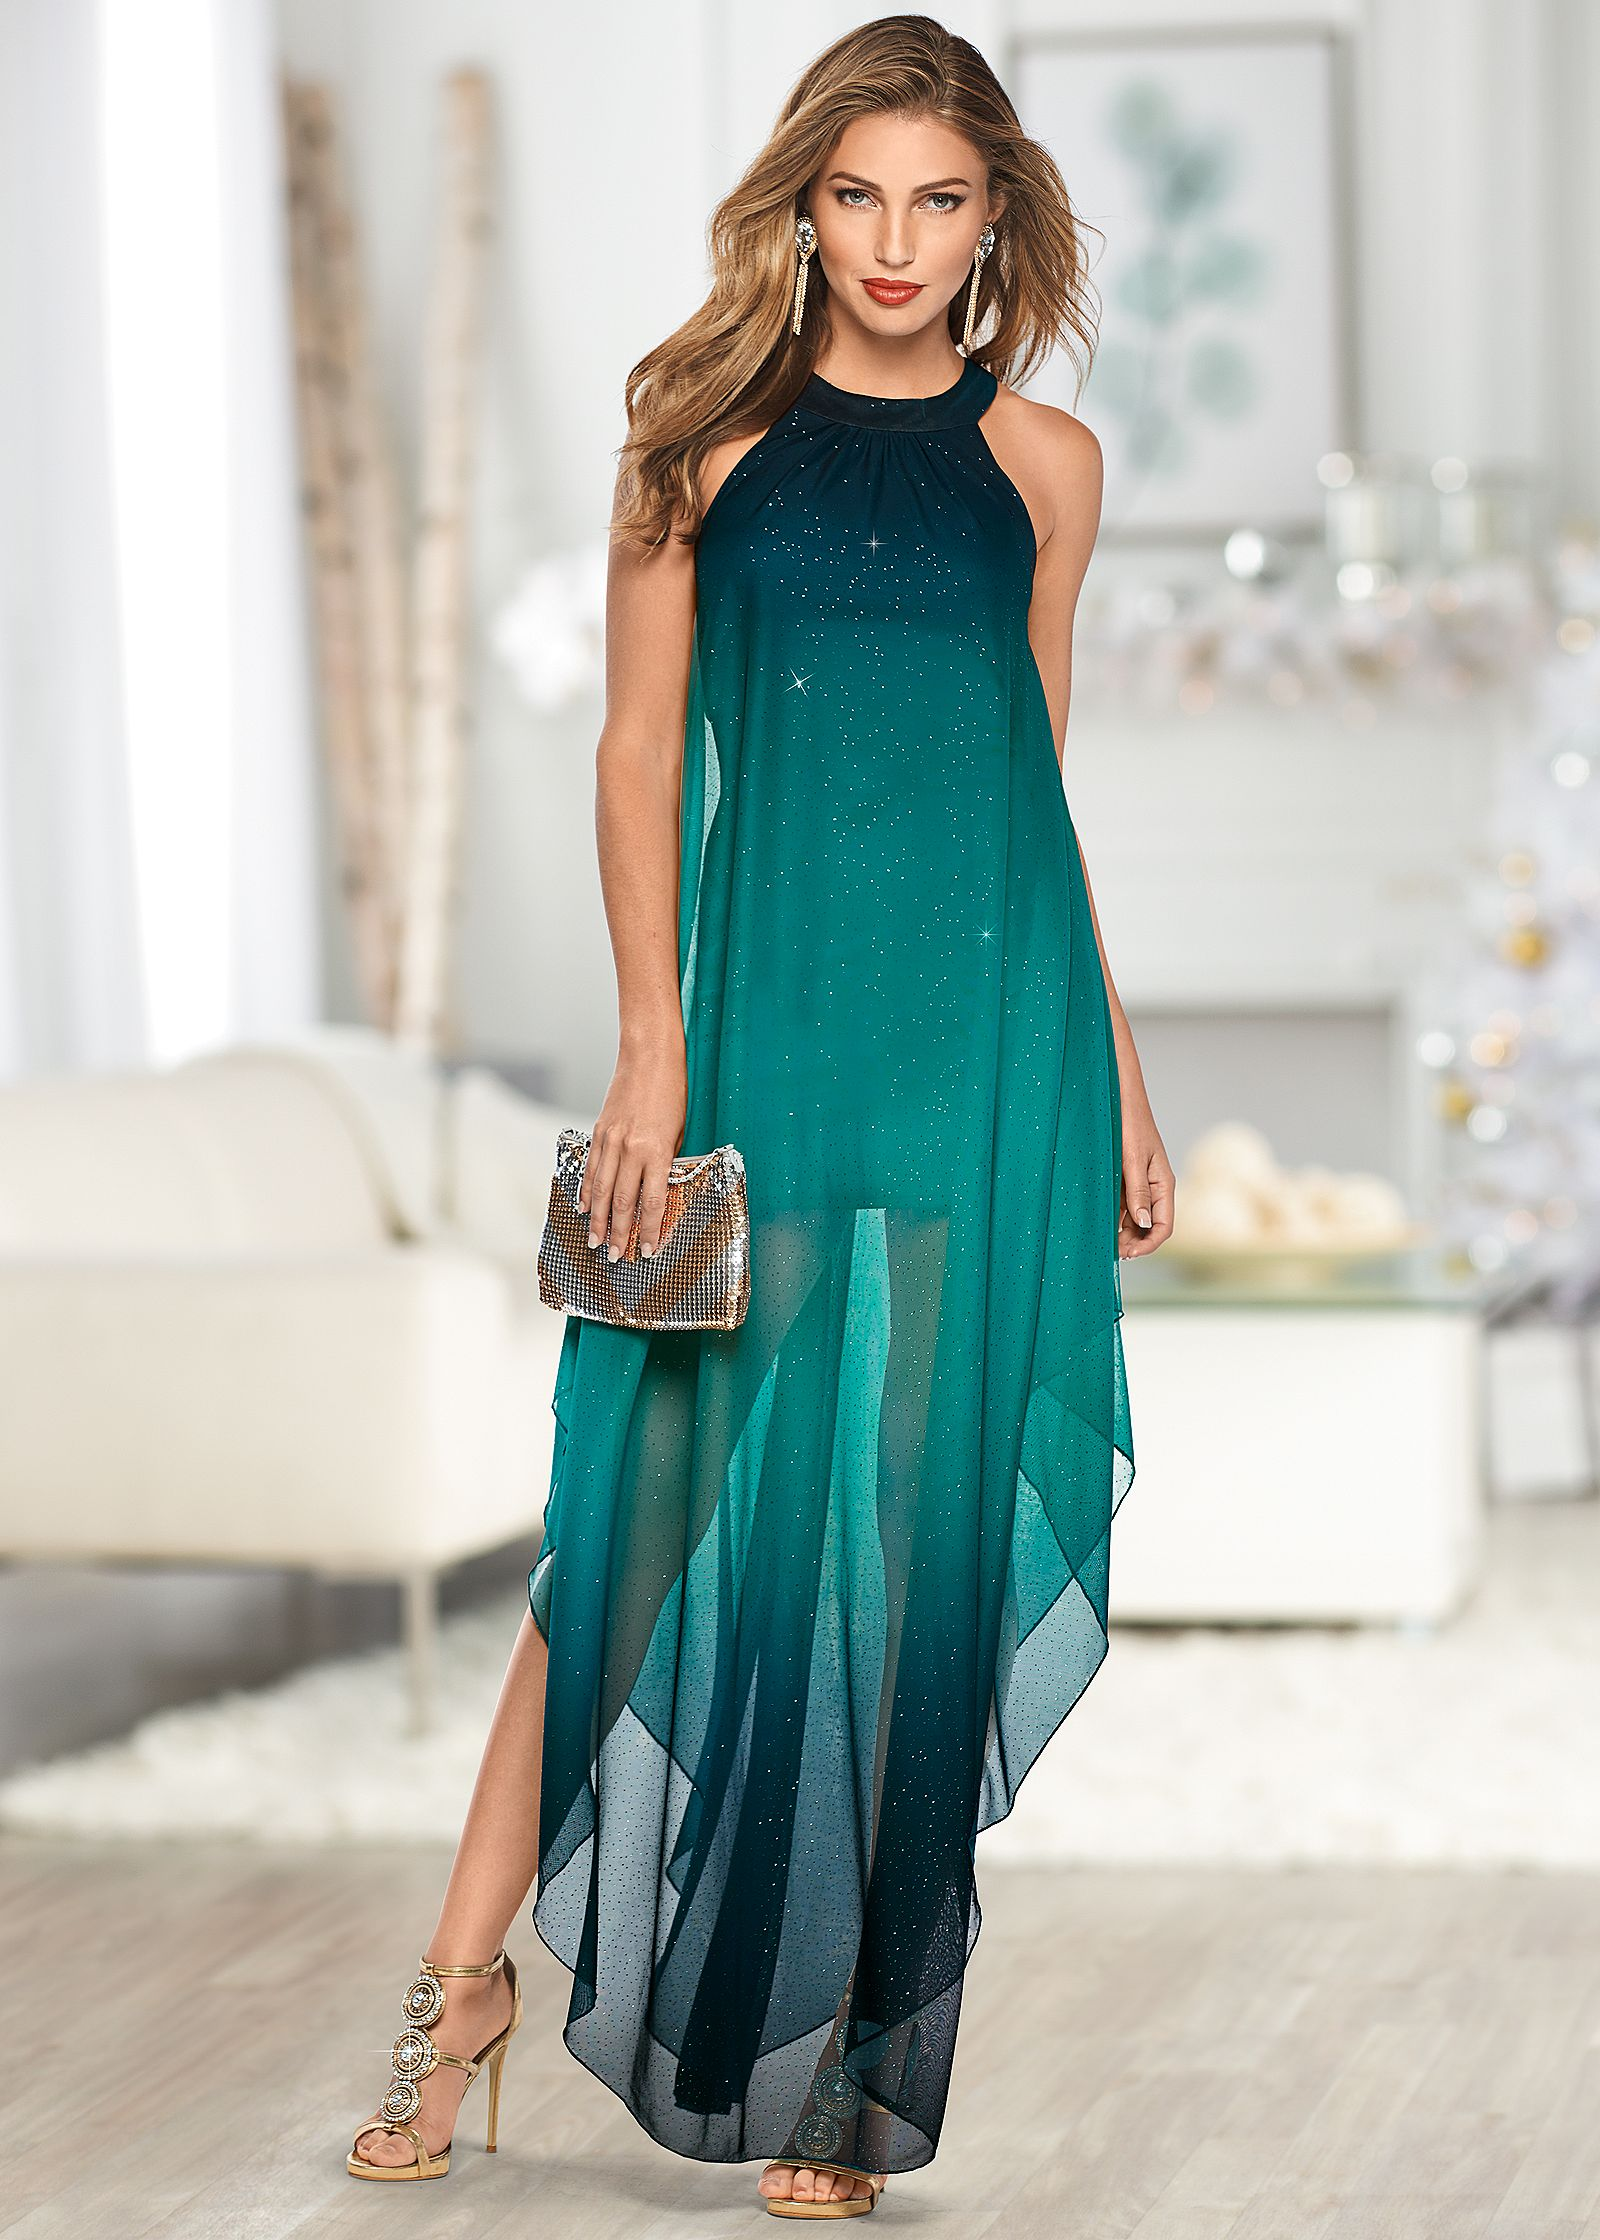 Long gown dresses pictures